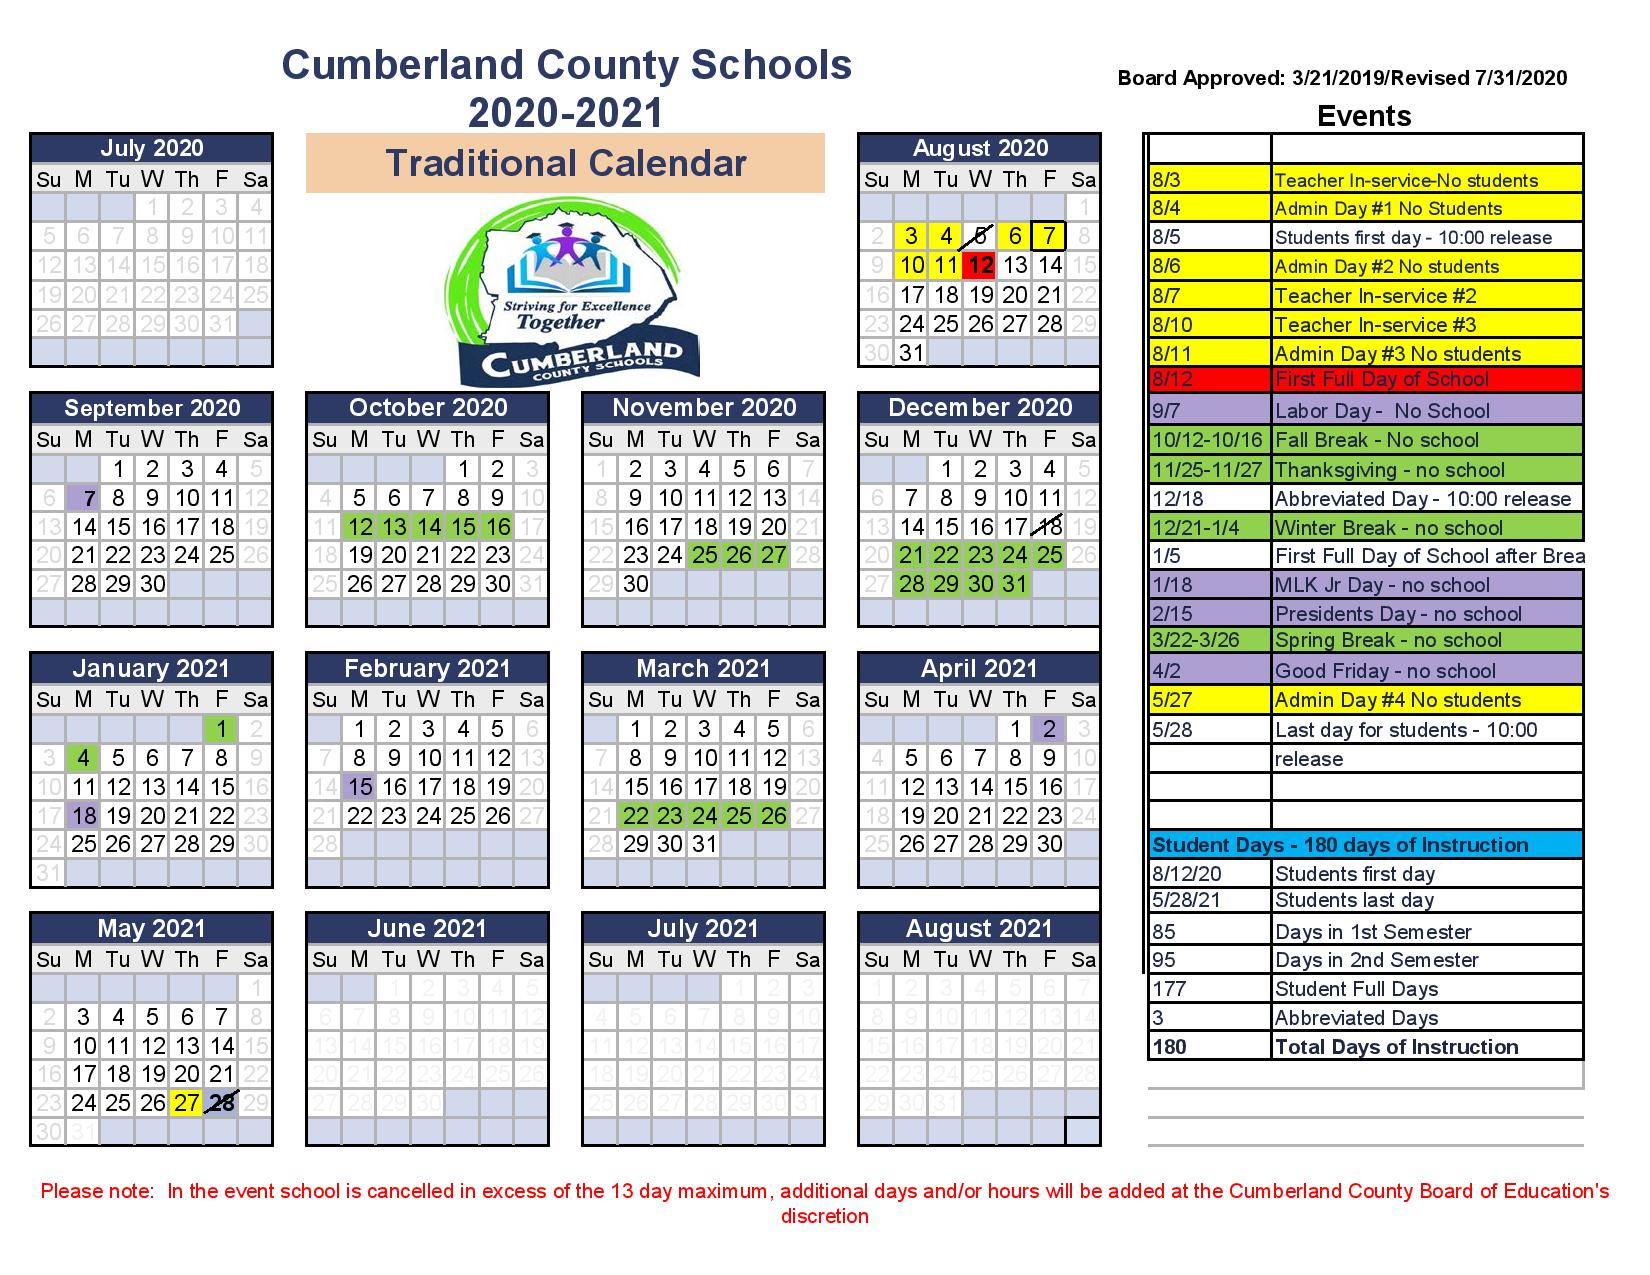 School Calendar 2020-2021 Revised Aug 13 2020